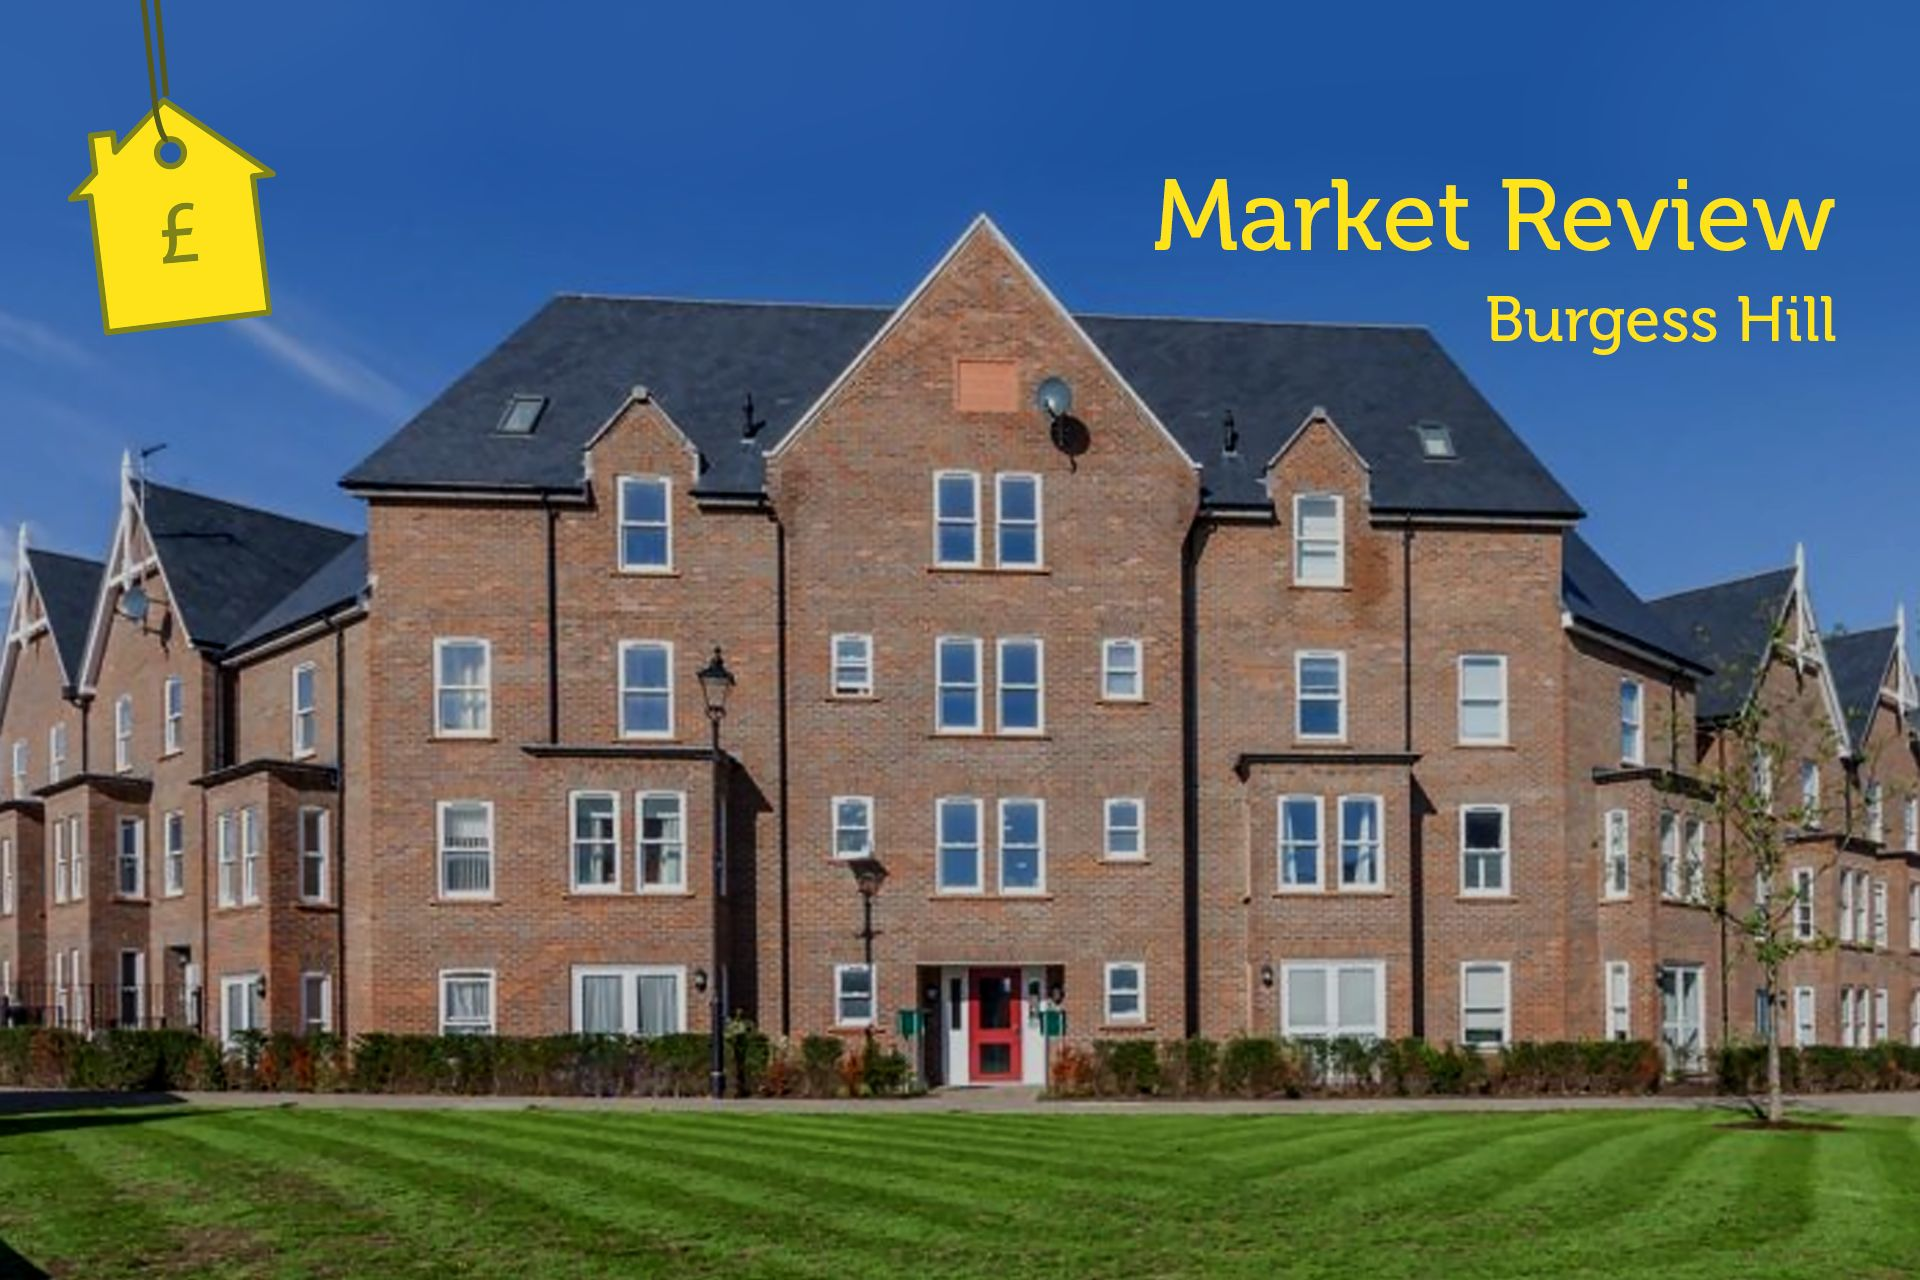 burgess hill and uk property market review